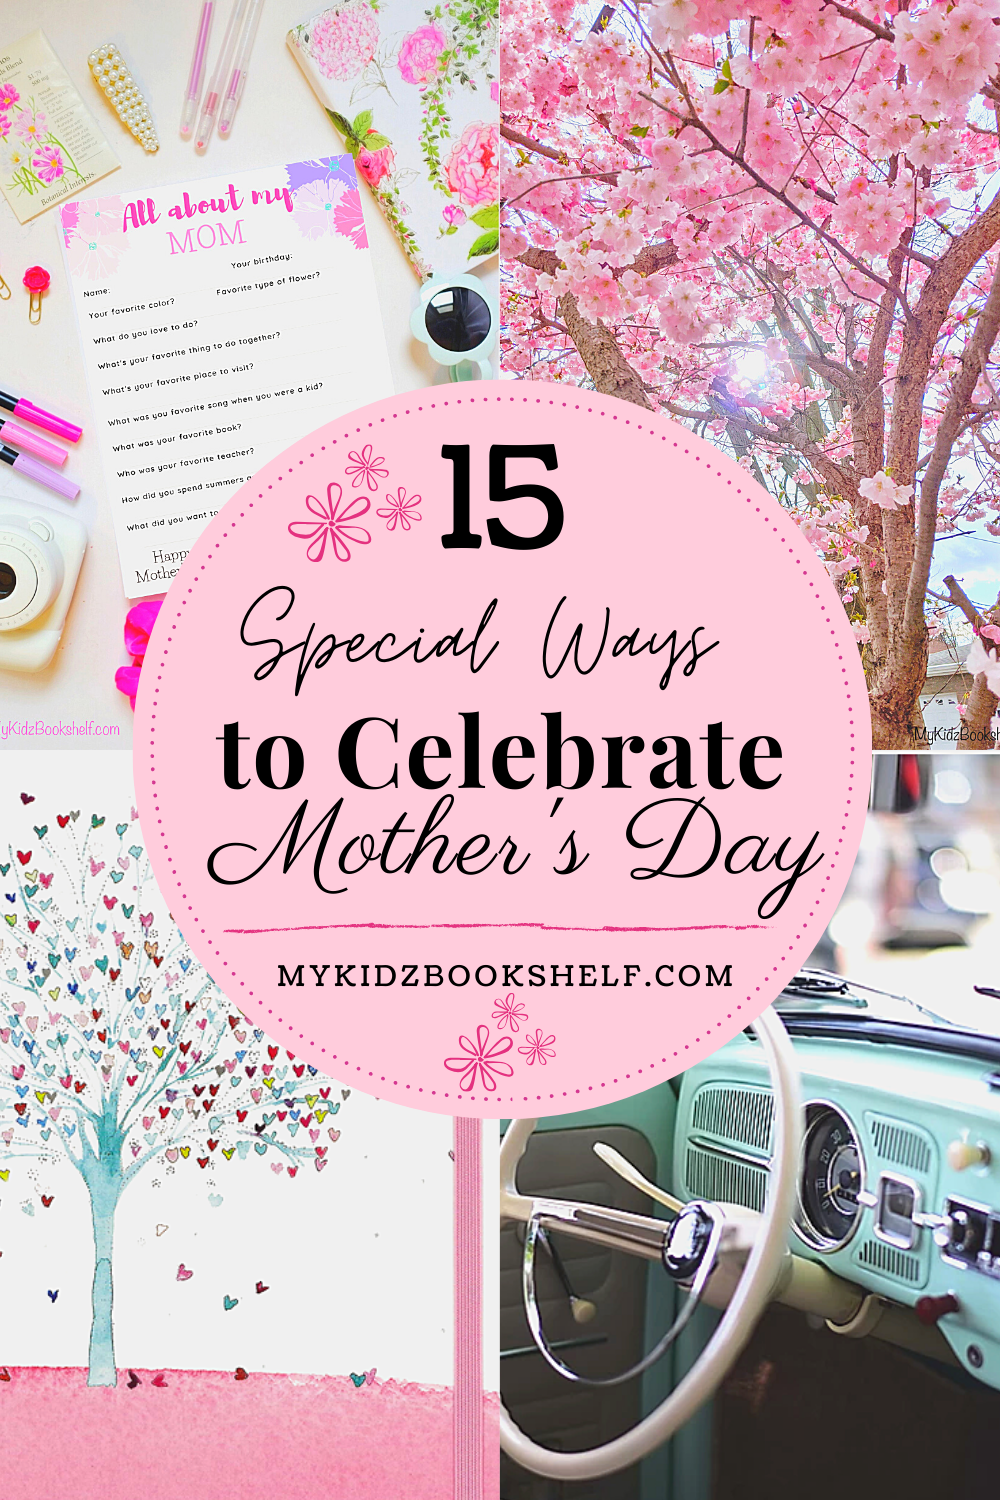 15 Special Ways to Celebrate Mother's Day Pinterest Pin with printable, car, journal, tree